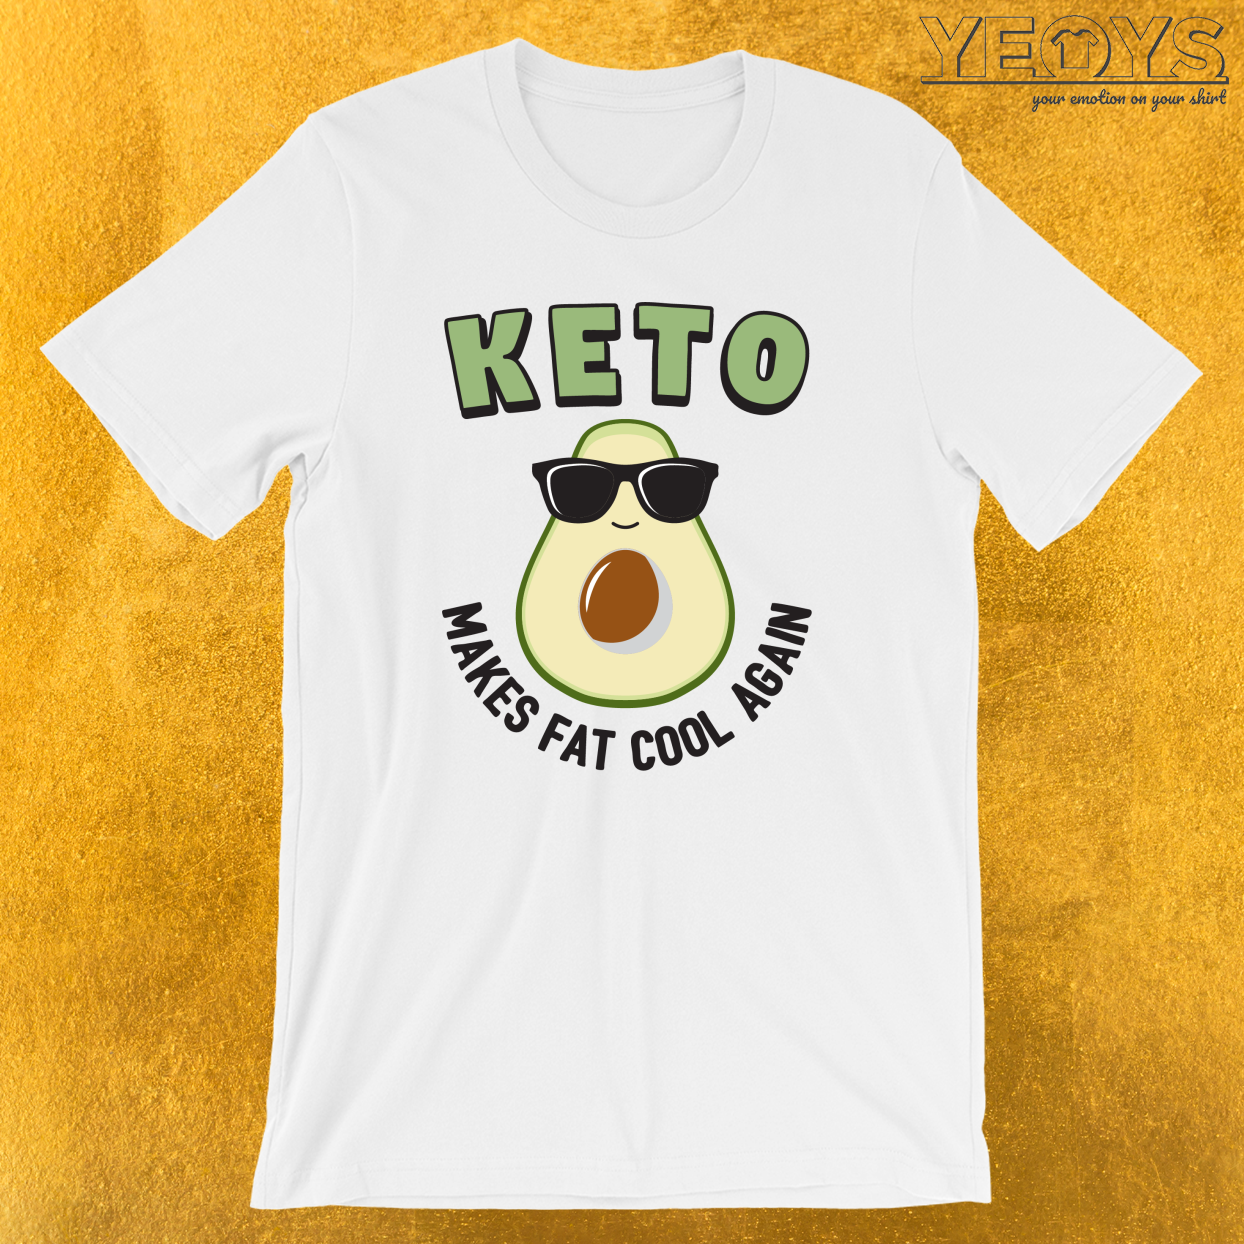 Keto Makes Fat Cool Again T-Shirt